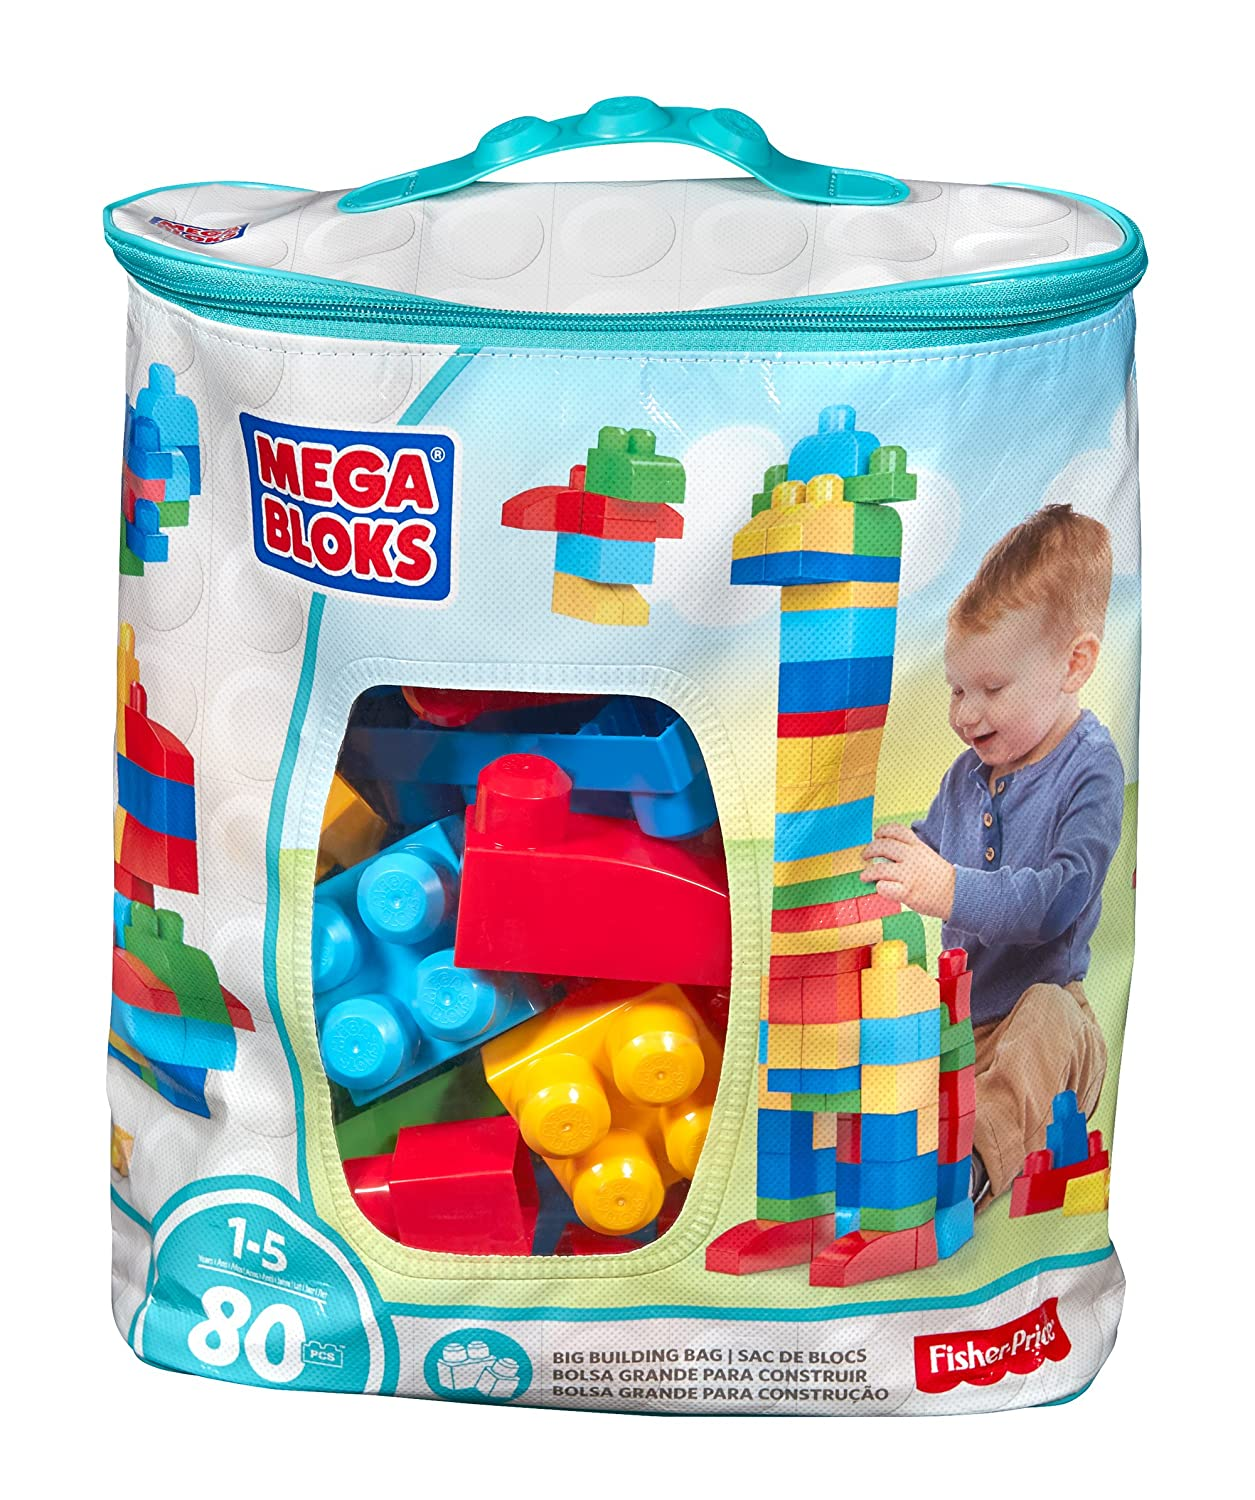 Top 15 Best Toys For 18 Month Old Toddler Reviews (Mar. 2017)